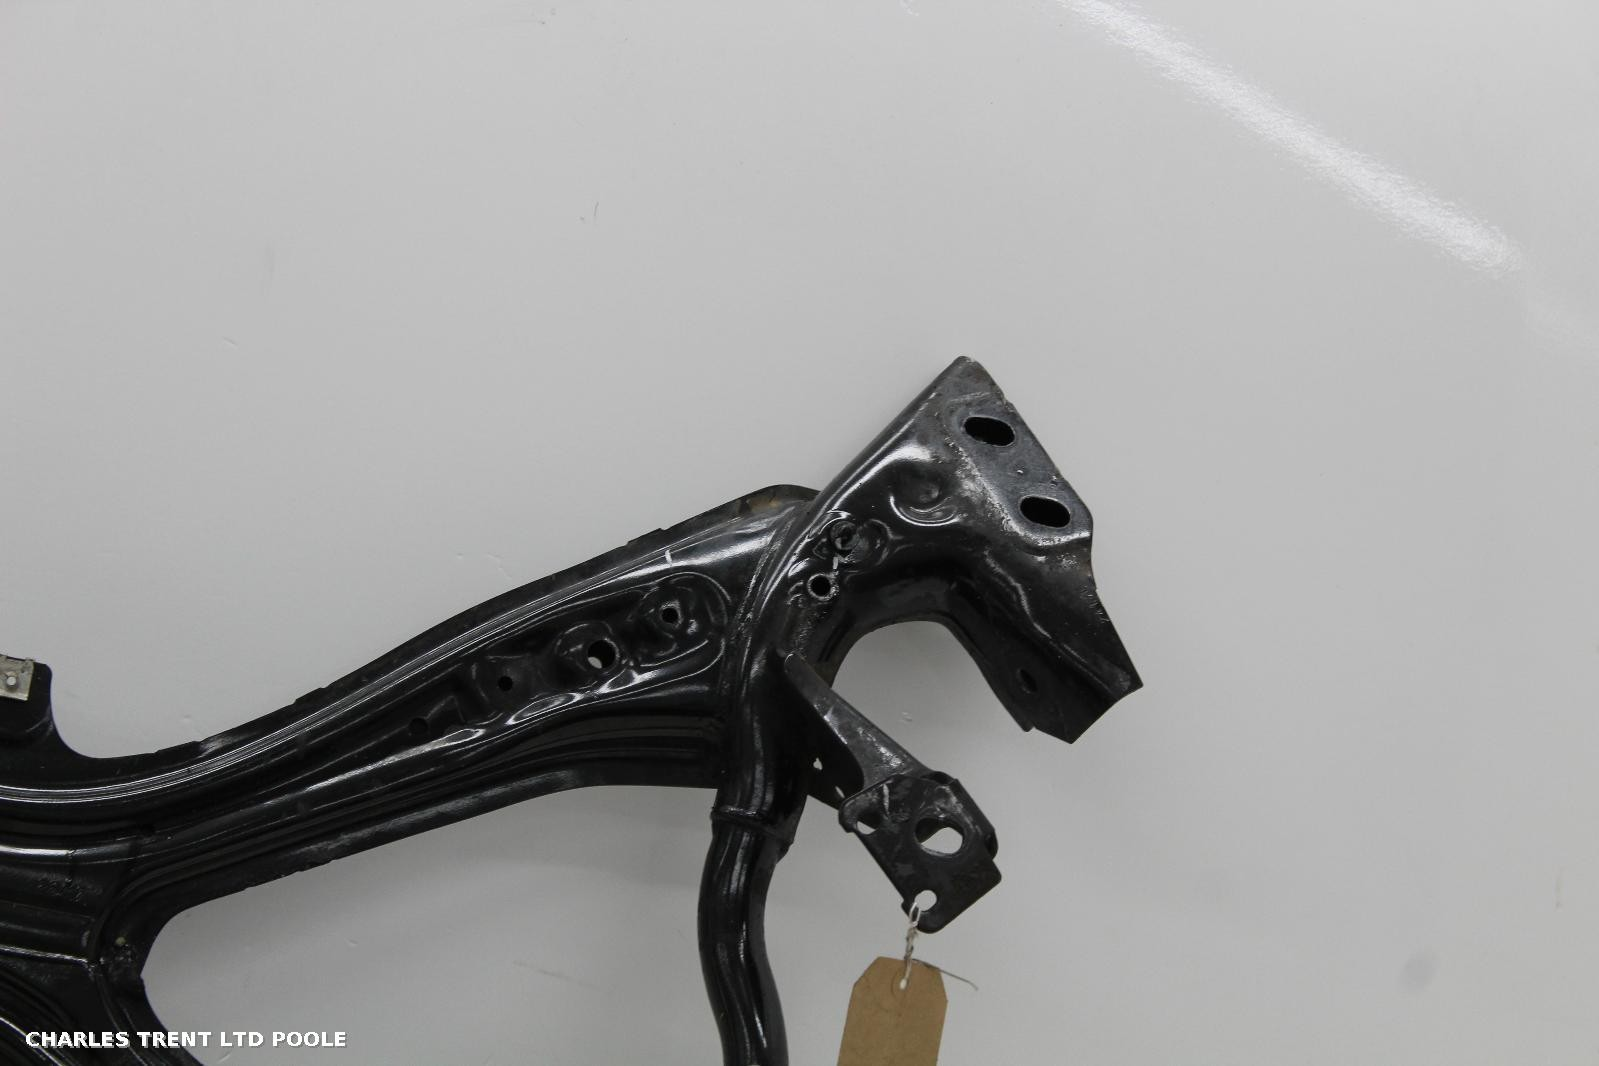 2017 - AUDI - A5 - SUBFRAME (FRONT)